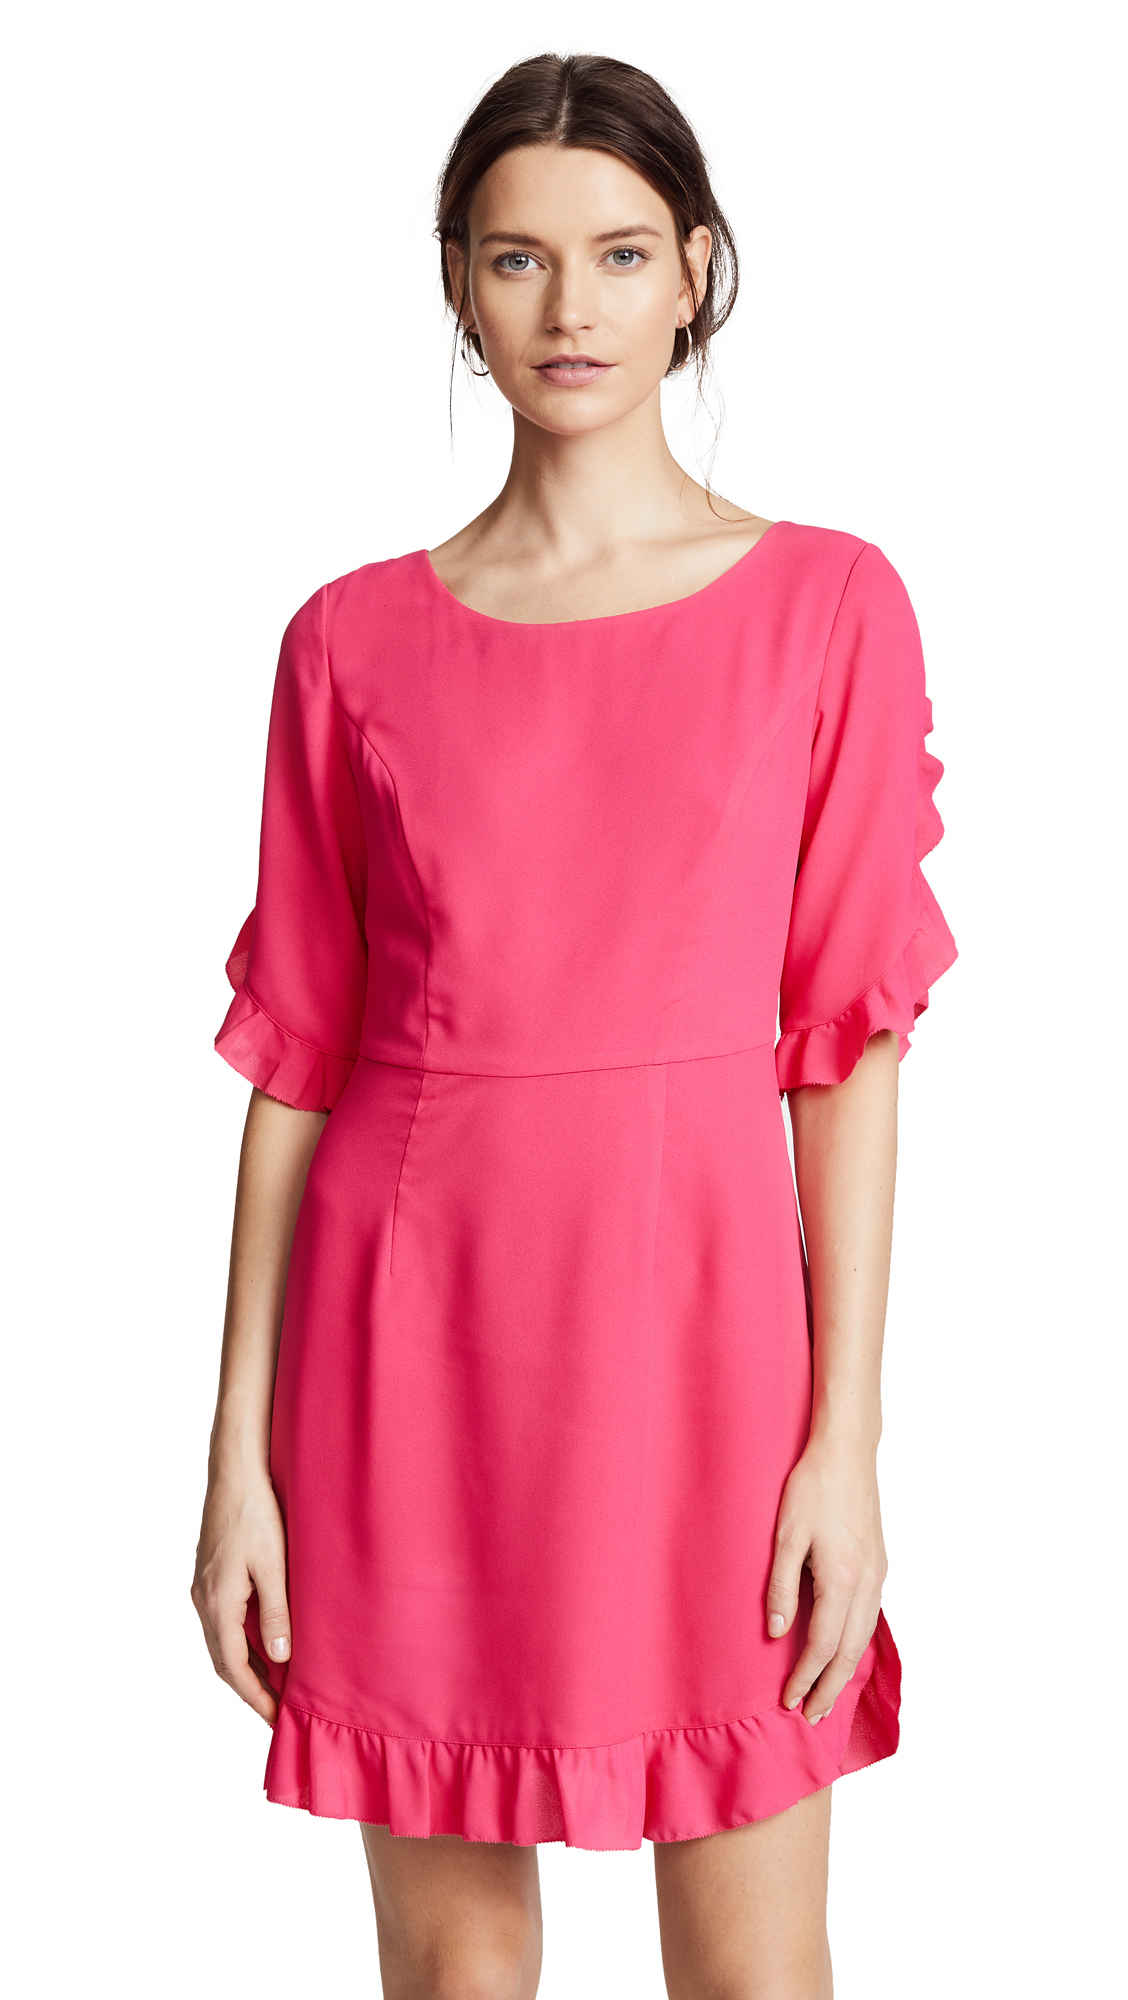 Cooper & Ella Milou Ruffle Dress In Hot Pink